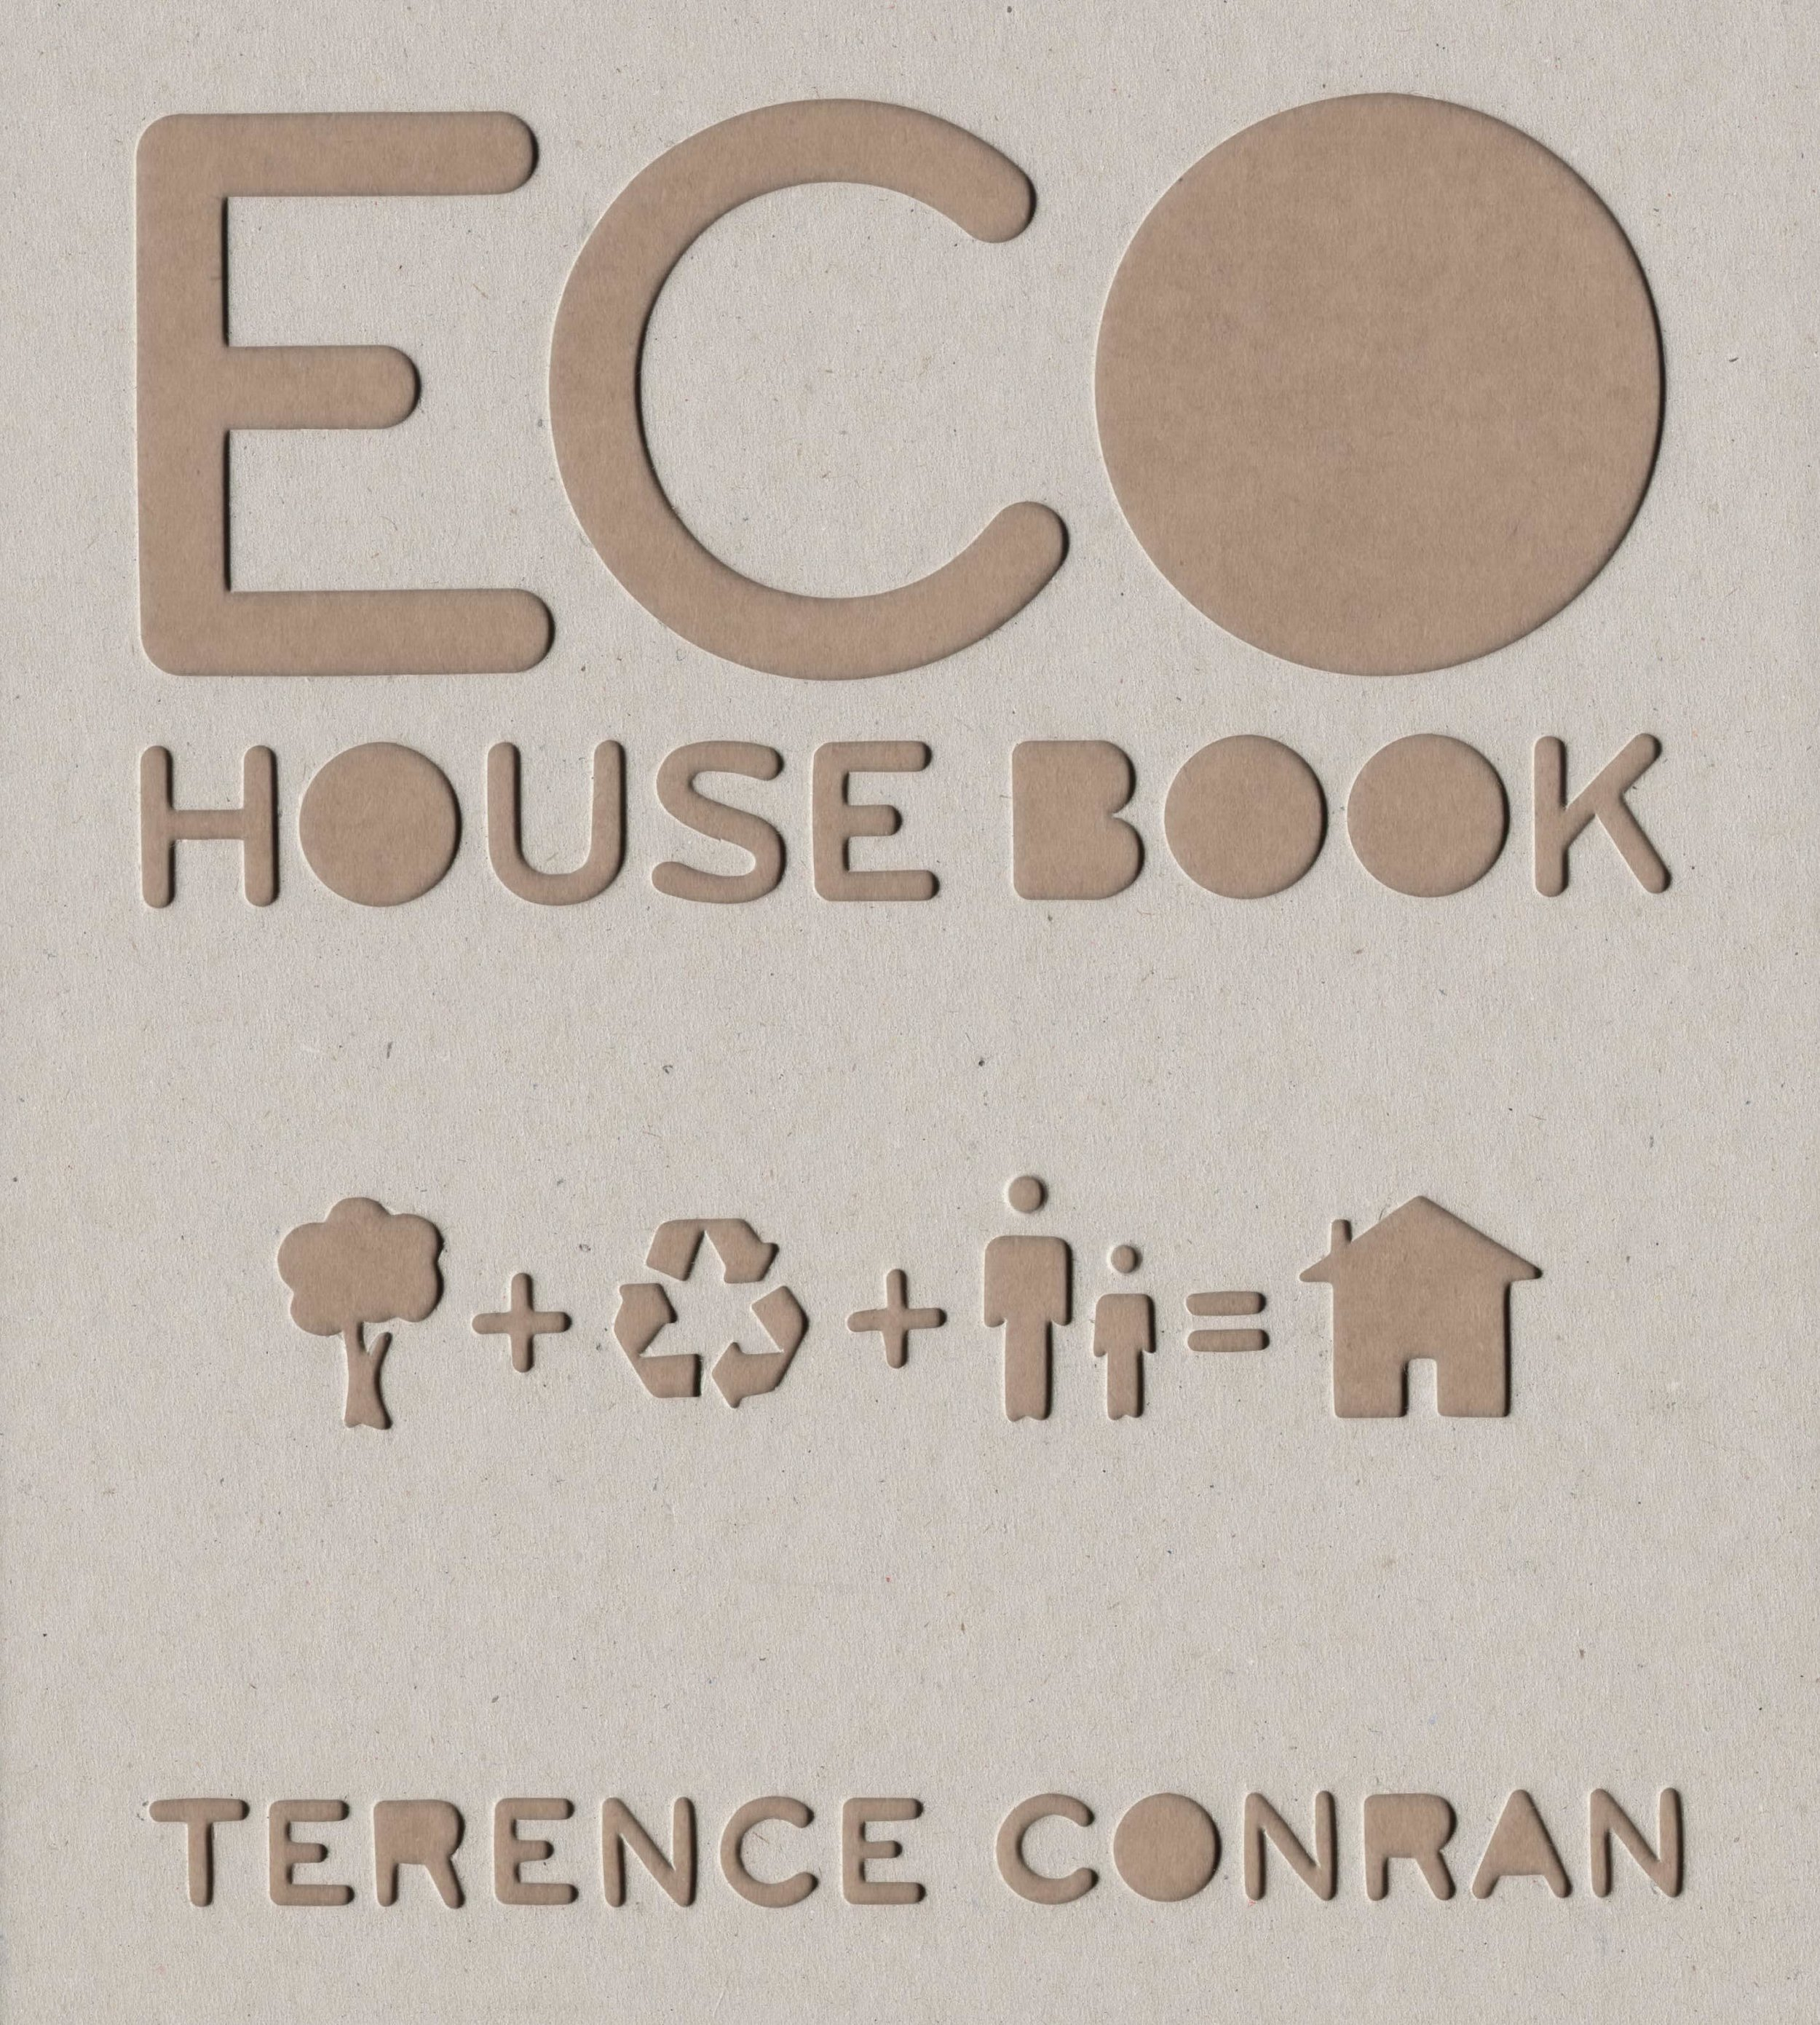 The Eco House Book, 2009